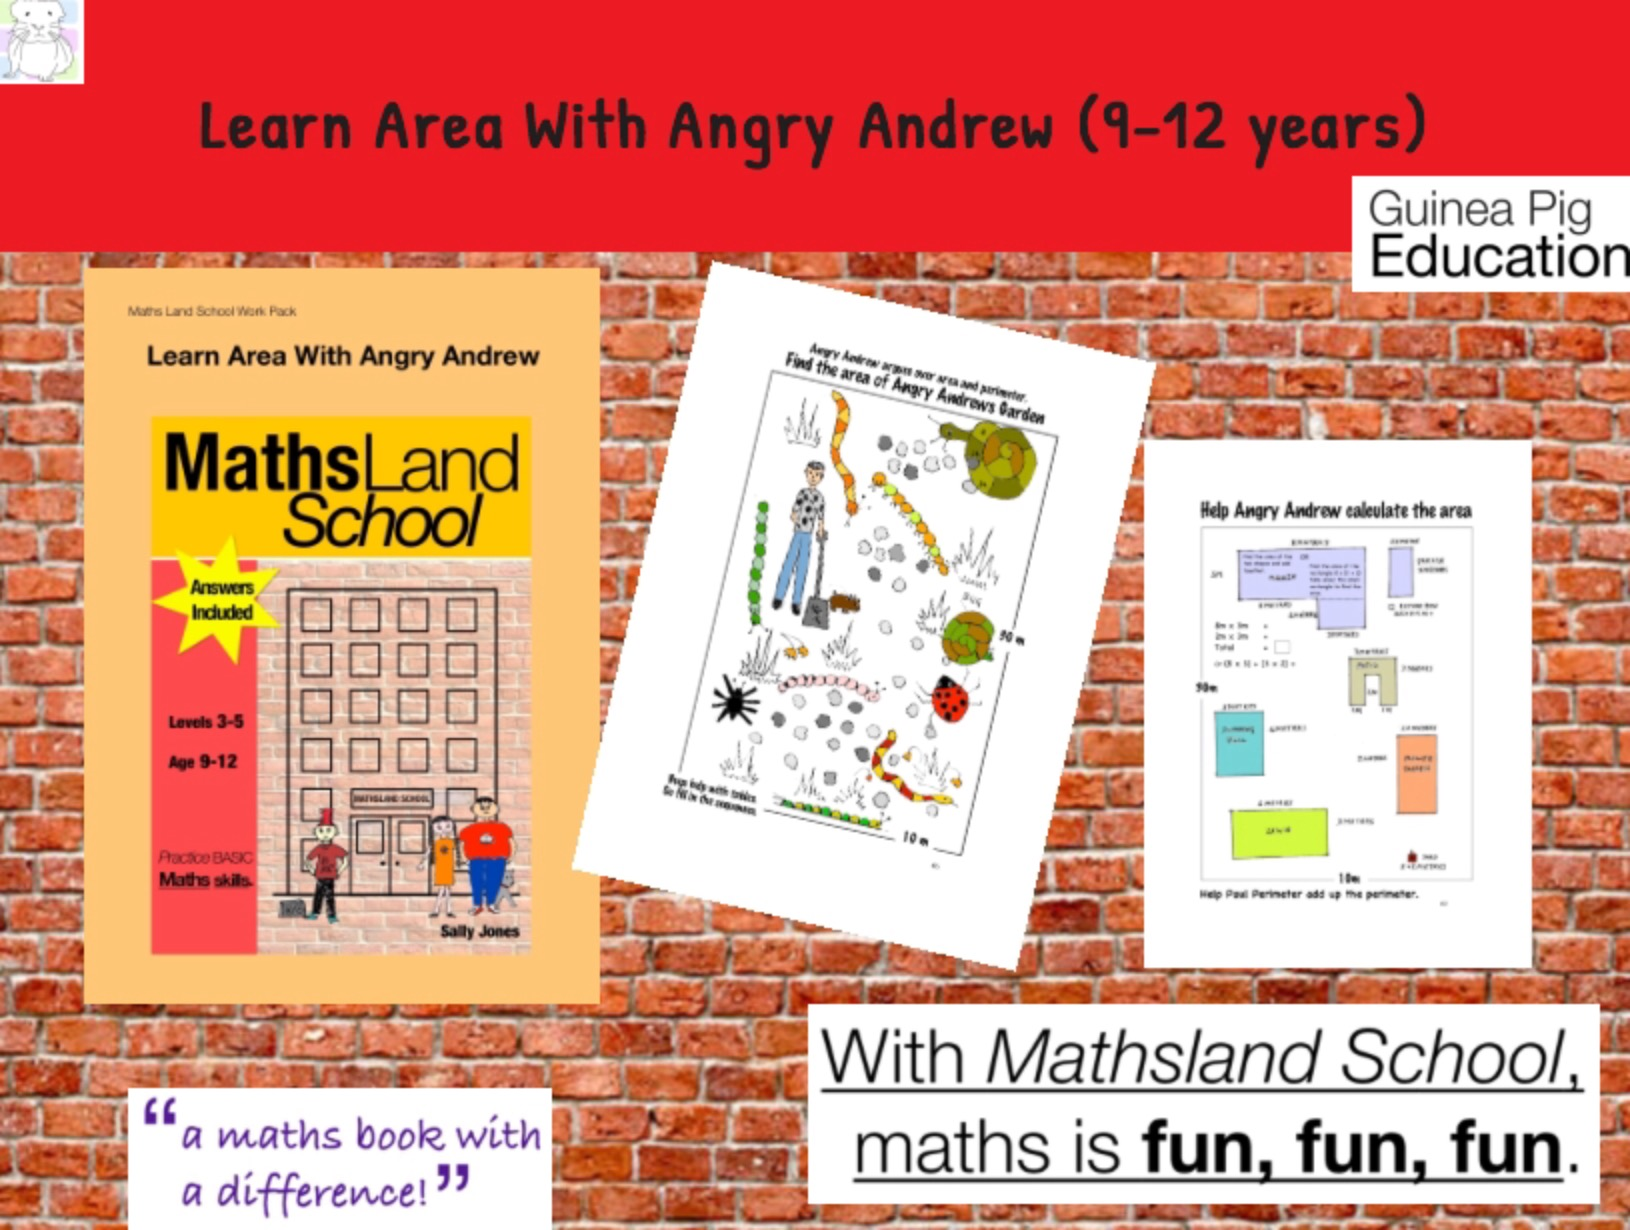 Learn Area With Angry Andrew Area (9-12 years)